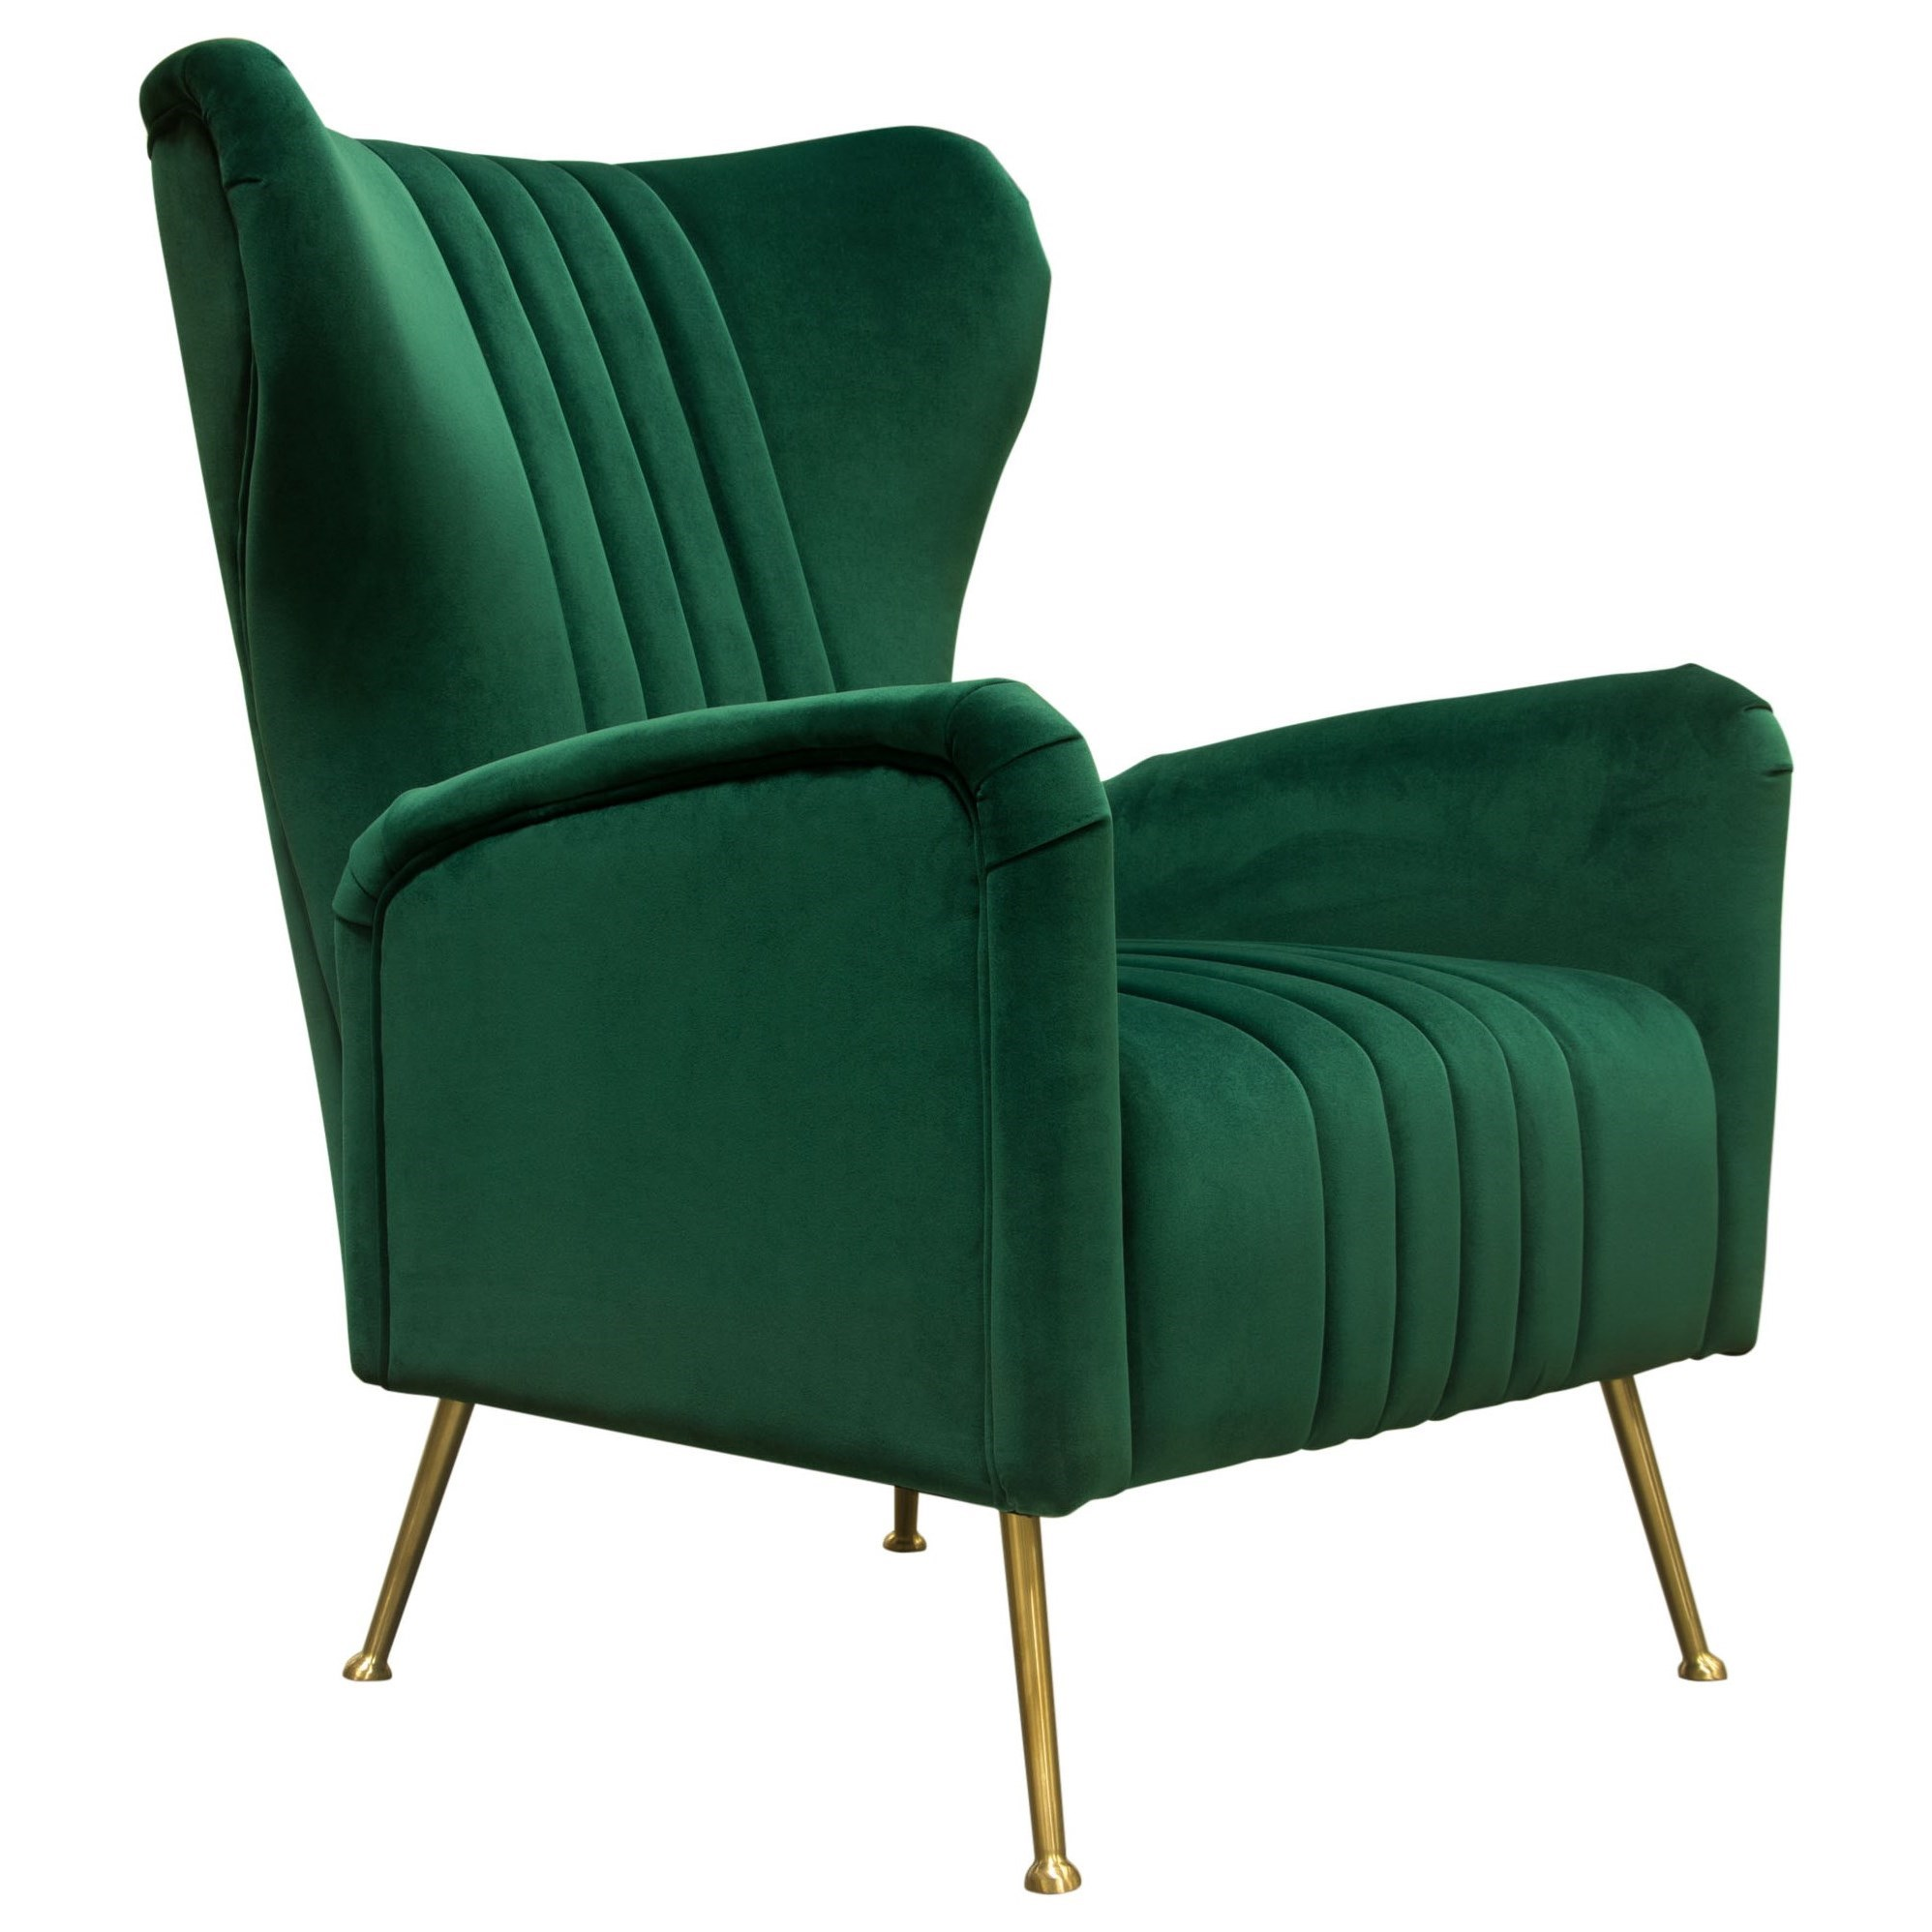 Ava Chair by Diamond Sofa at Red Knot